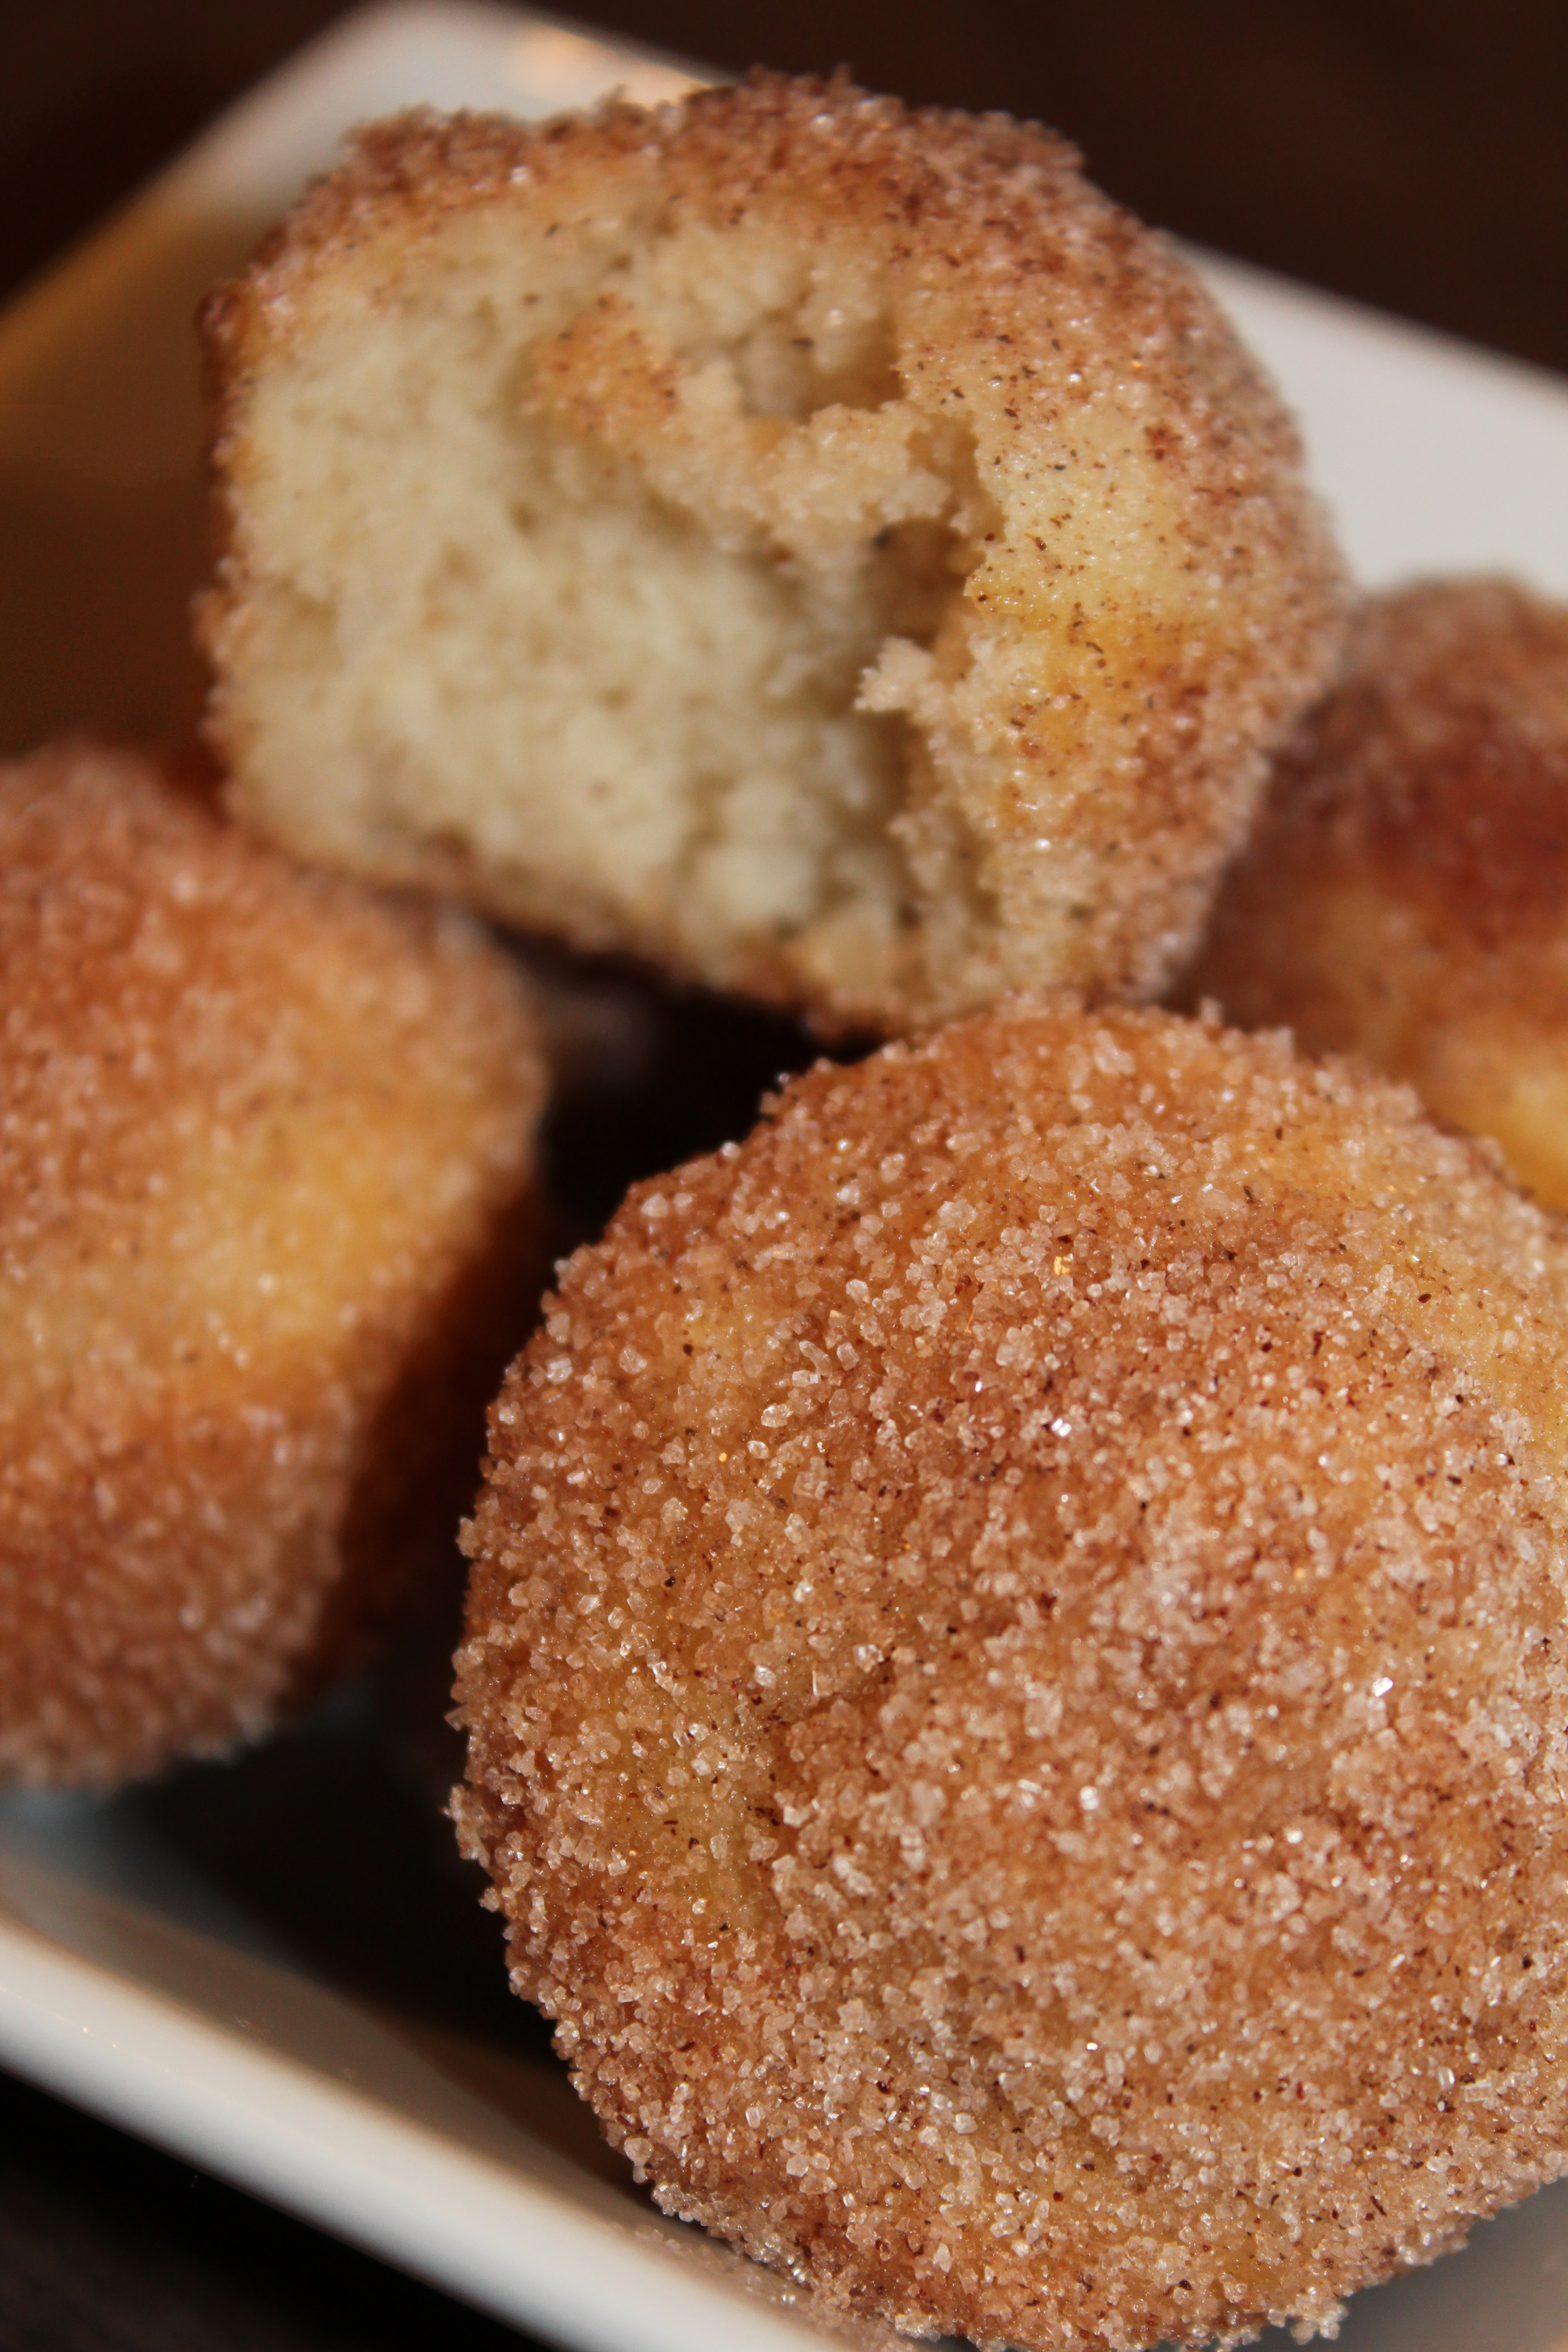 Cinnamon-Sugar Donut Muffins-Yup, I went there! | Salty, Sweets 'N ...